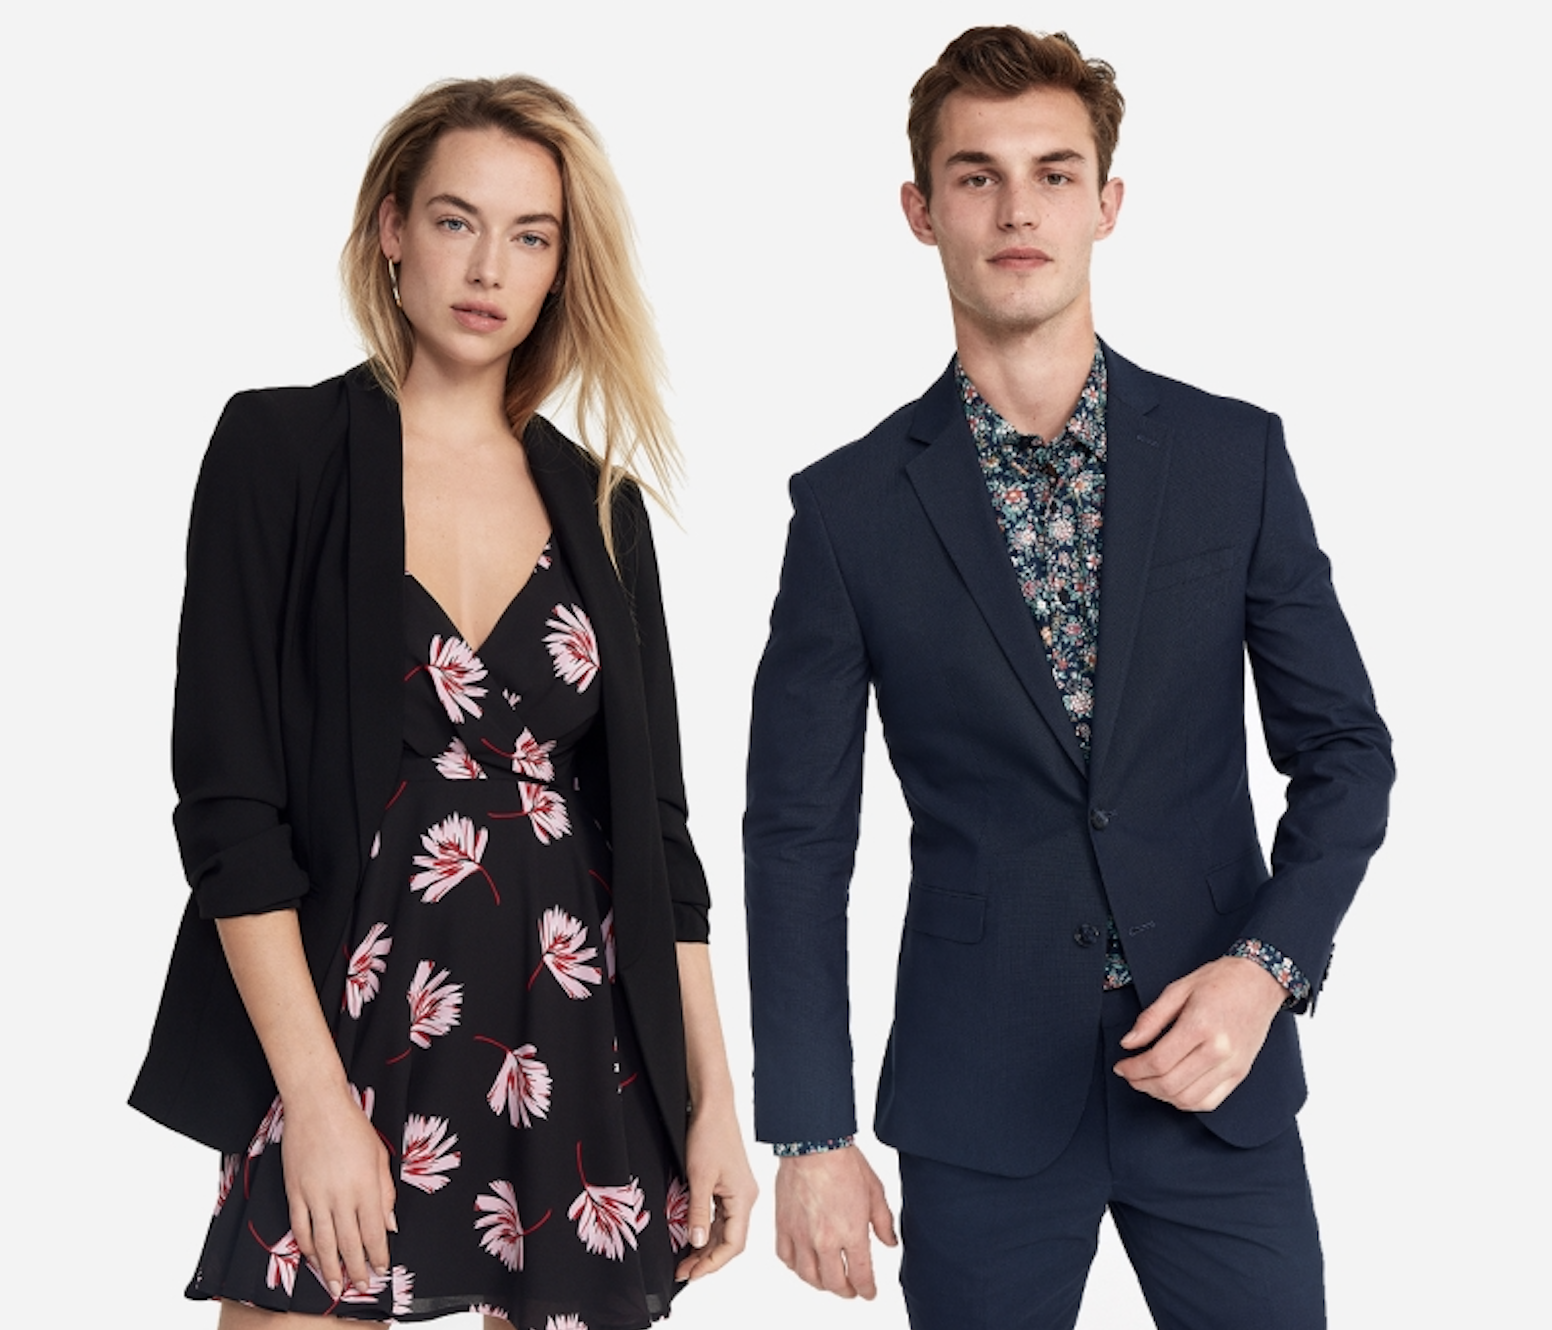 400+ New Arrivals Up to 40% Off